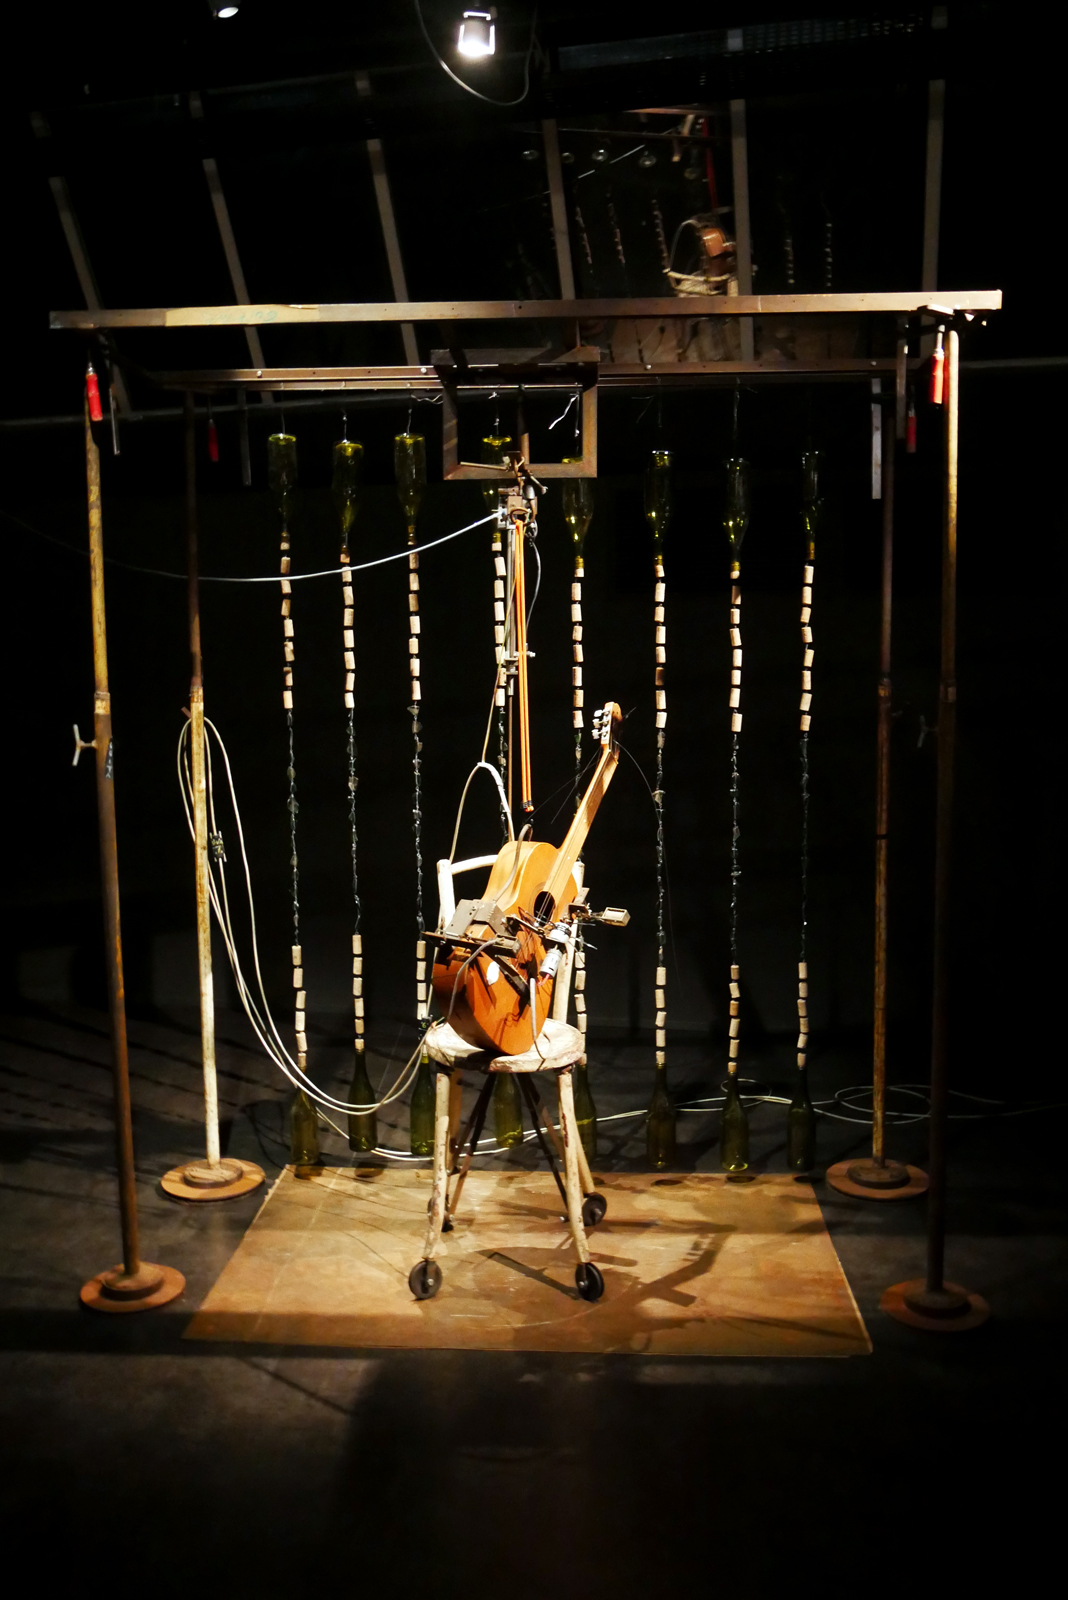 gilbert-peyre-chaise-et-guitare-2009-electropneumatique-halle-saint-pierre-paris-exposition